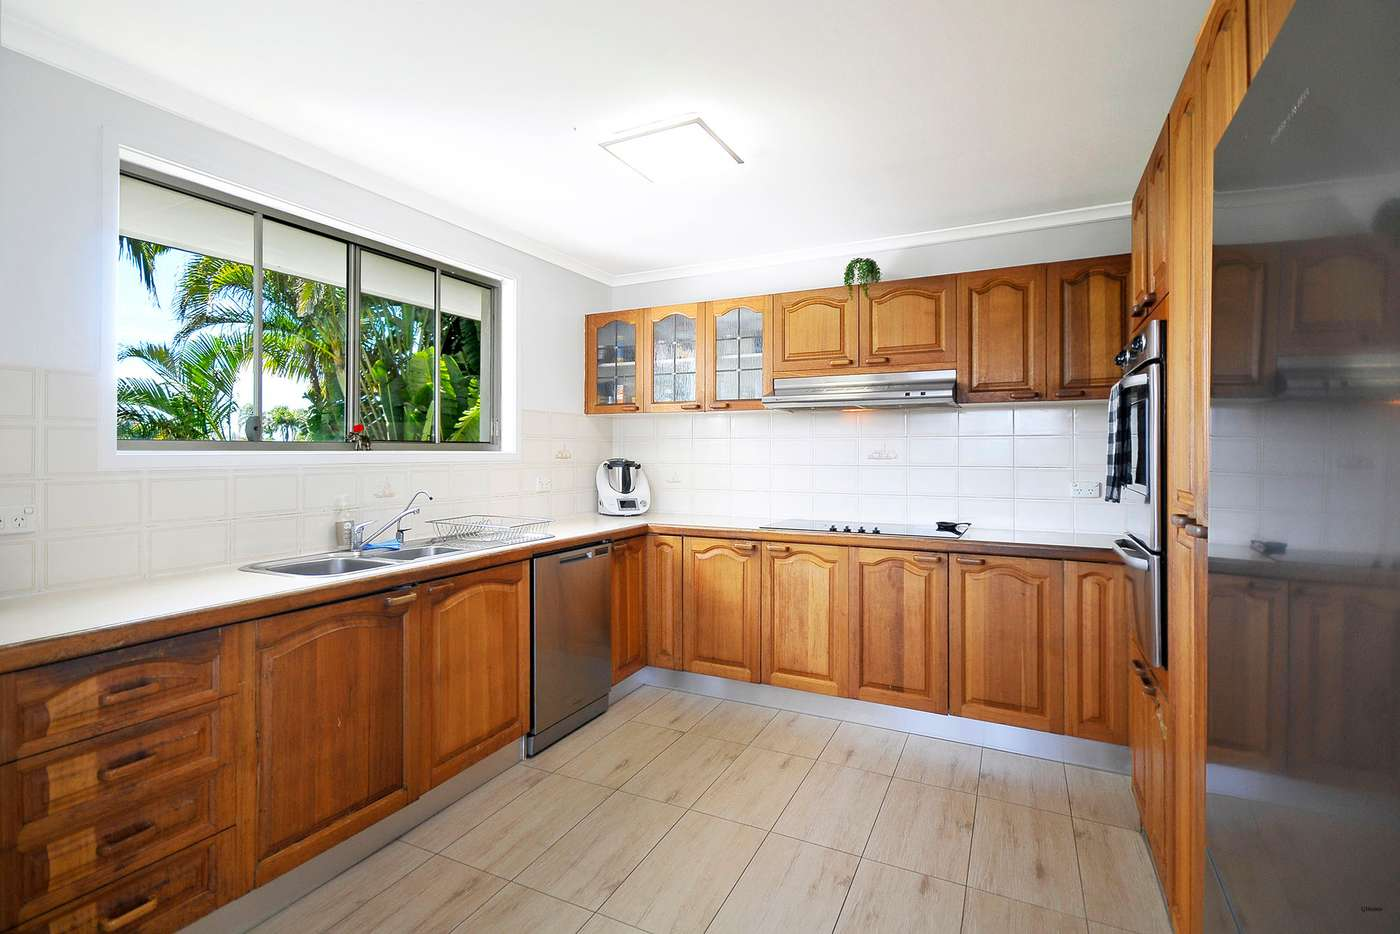 Seventh view of Homely house listing, 5 Spindle Street, Palm Beach QLD 4221